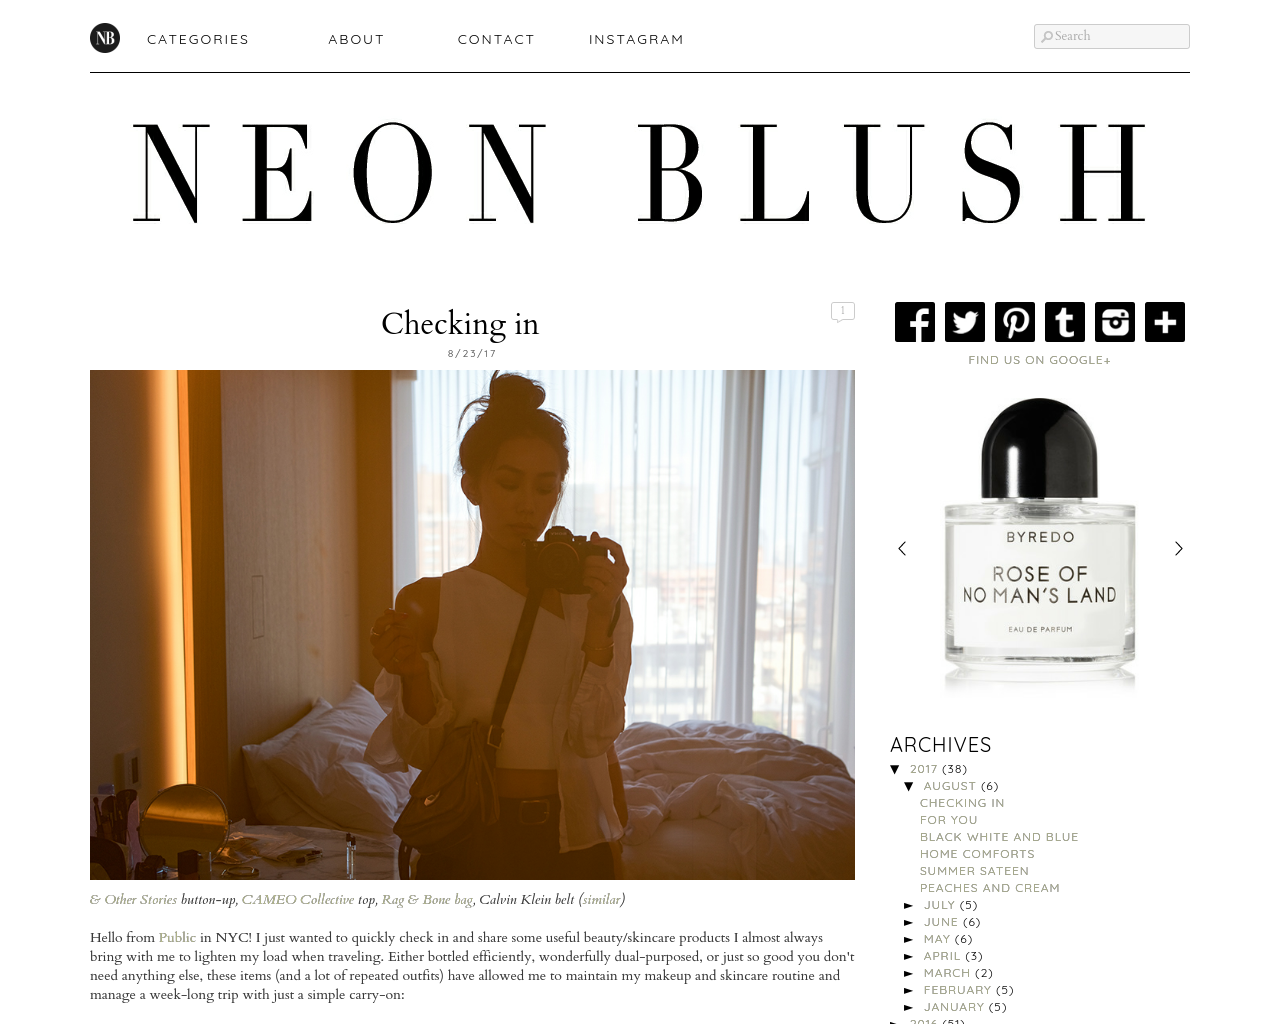 Neon-Blush-Advertising-Reviews-Pricing